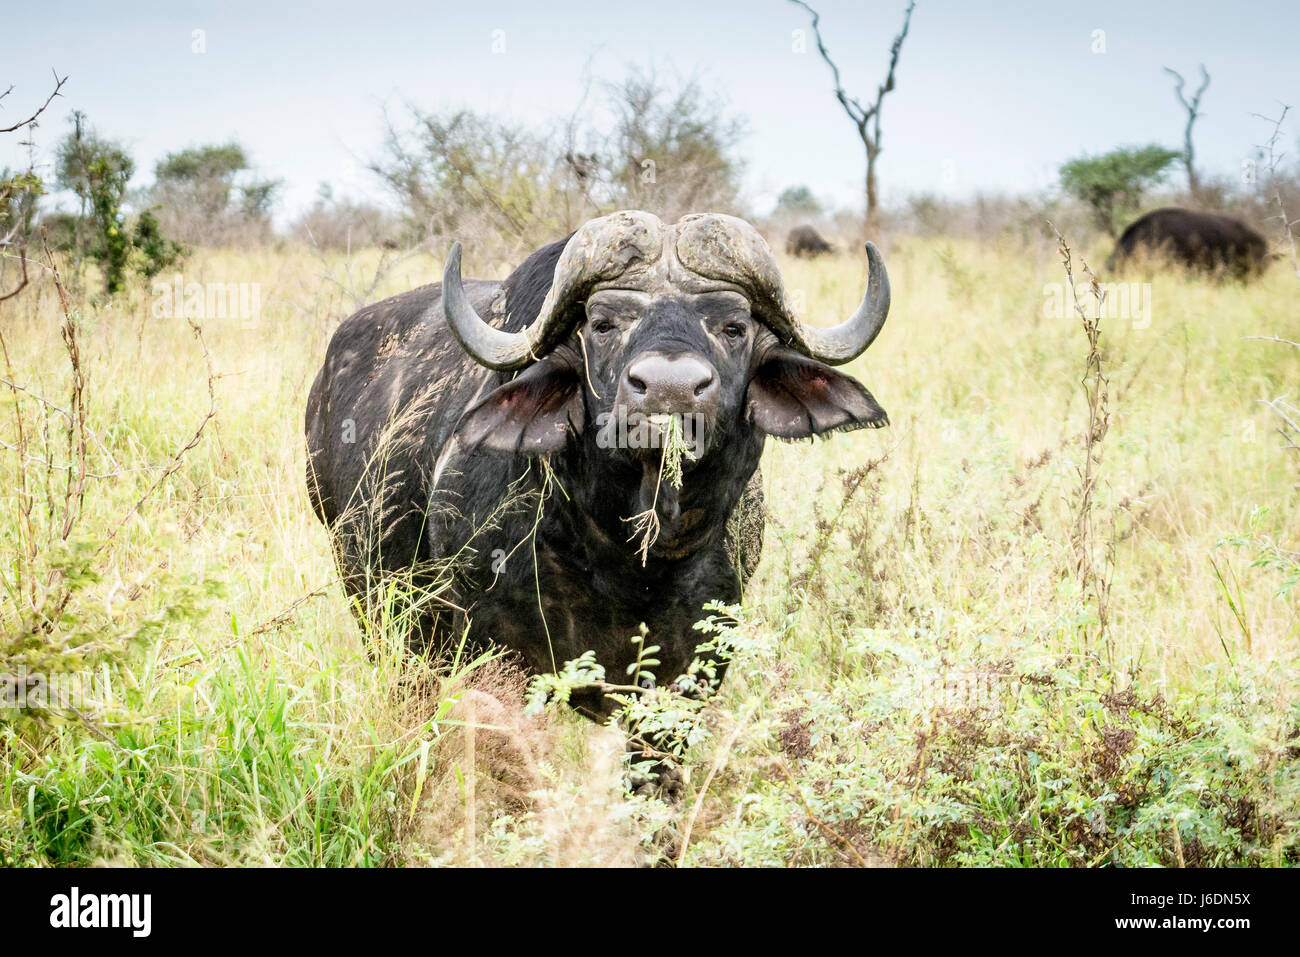 African buffalo grazing with grass in it's mouth in Kruger National Park, South Africa - Stock Image